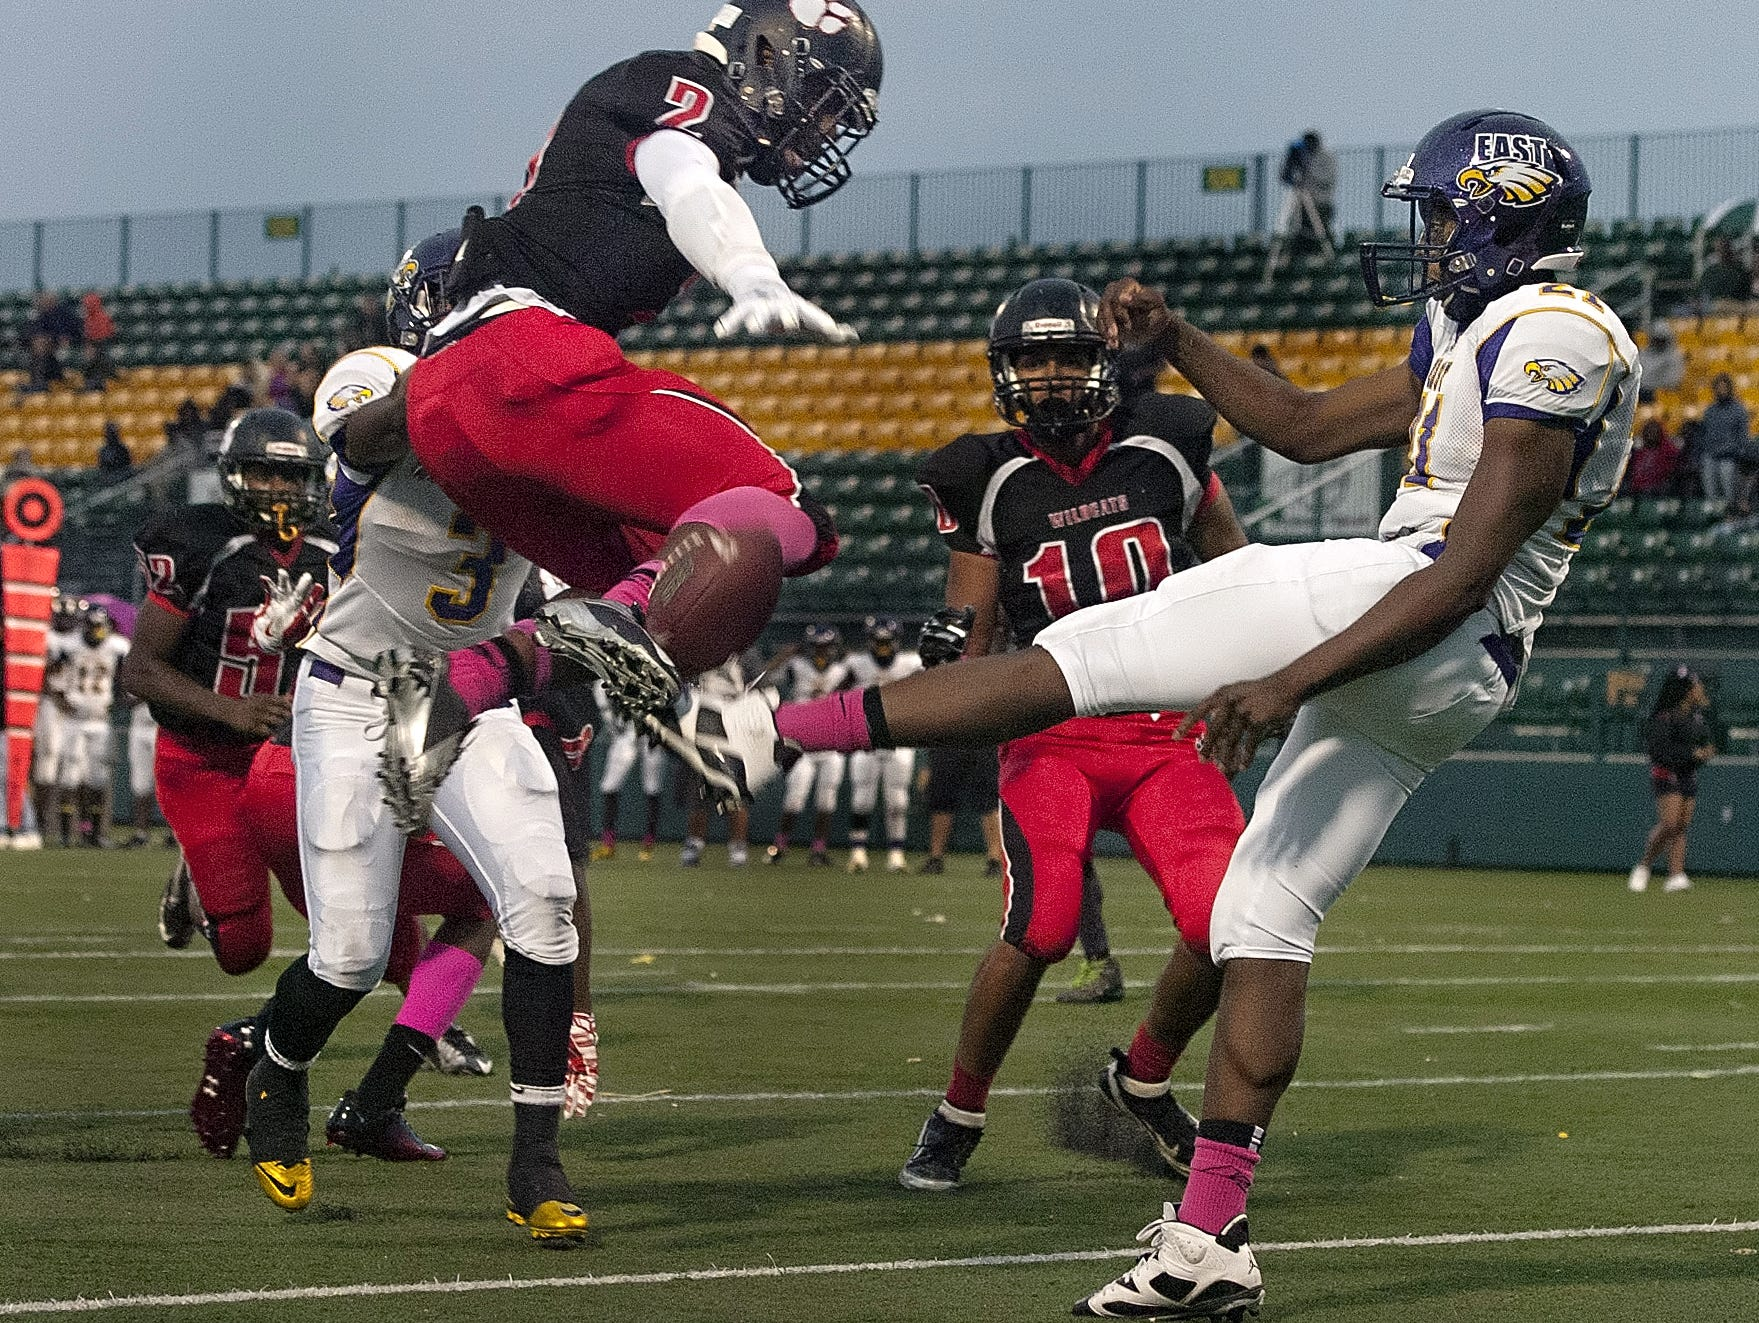 Wilson's Marvin Appleberry, left, blocks a punt by East's Davonte McClary in a RCAC regular-season game last fall at Sahlen's Stadium, which no longer will host the state football semifinals.